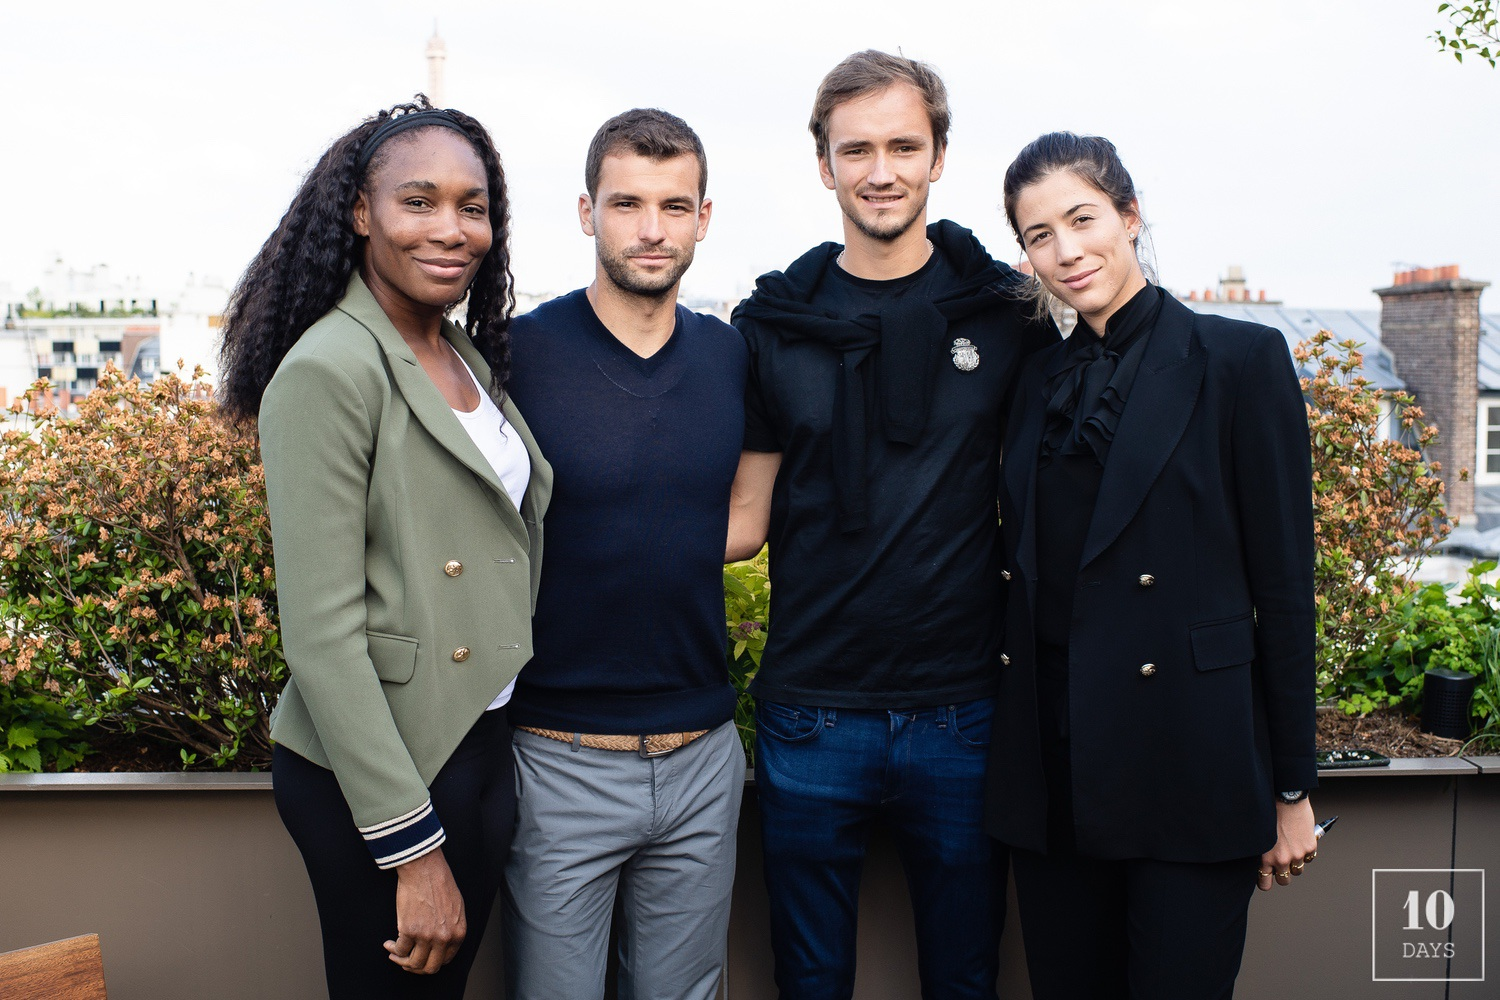 Brach Hotel Celebrates the Opening of Roland Garros w/ Serana Williams